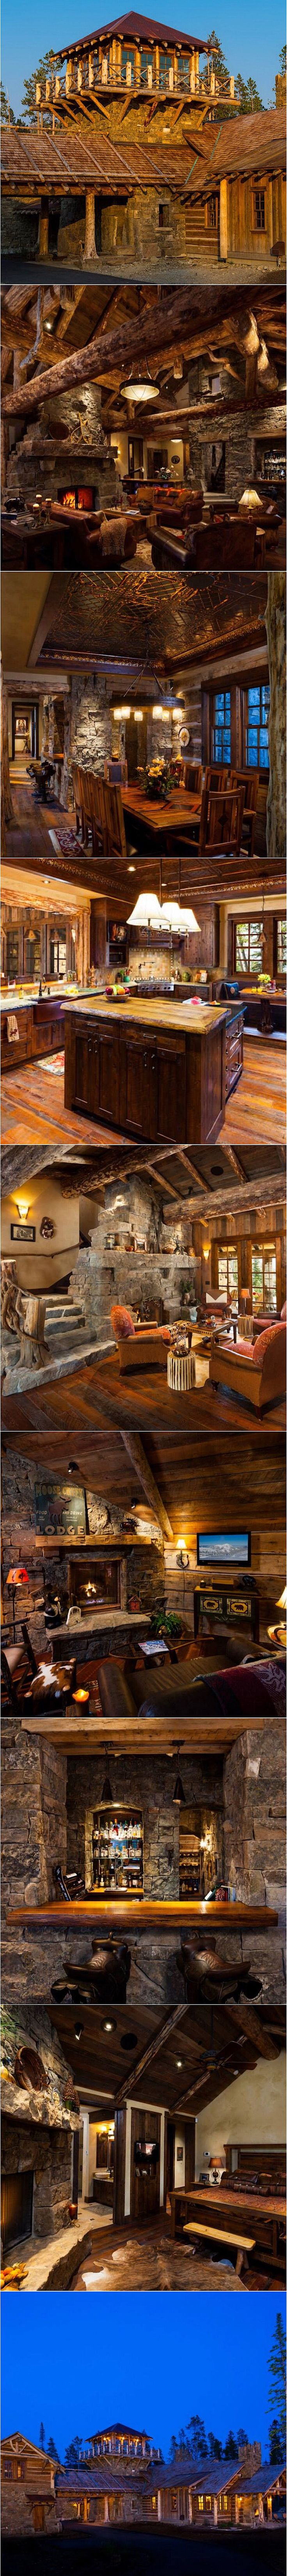 Best 25+ Mountain home decorating ideas on Pinterest | Beauty ...